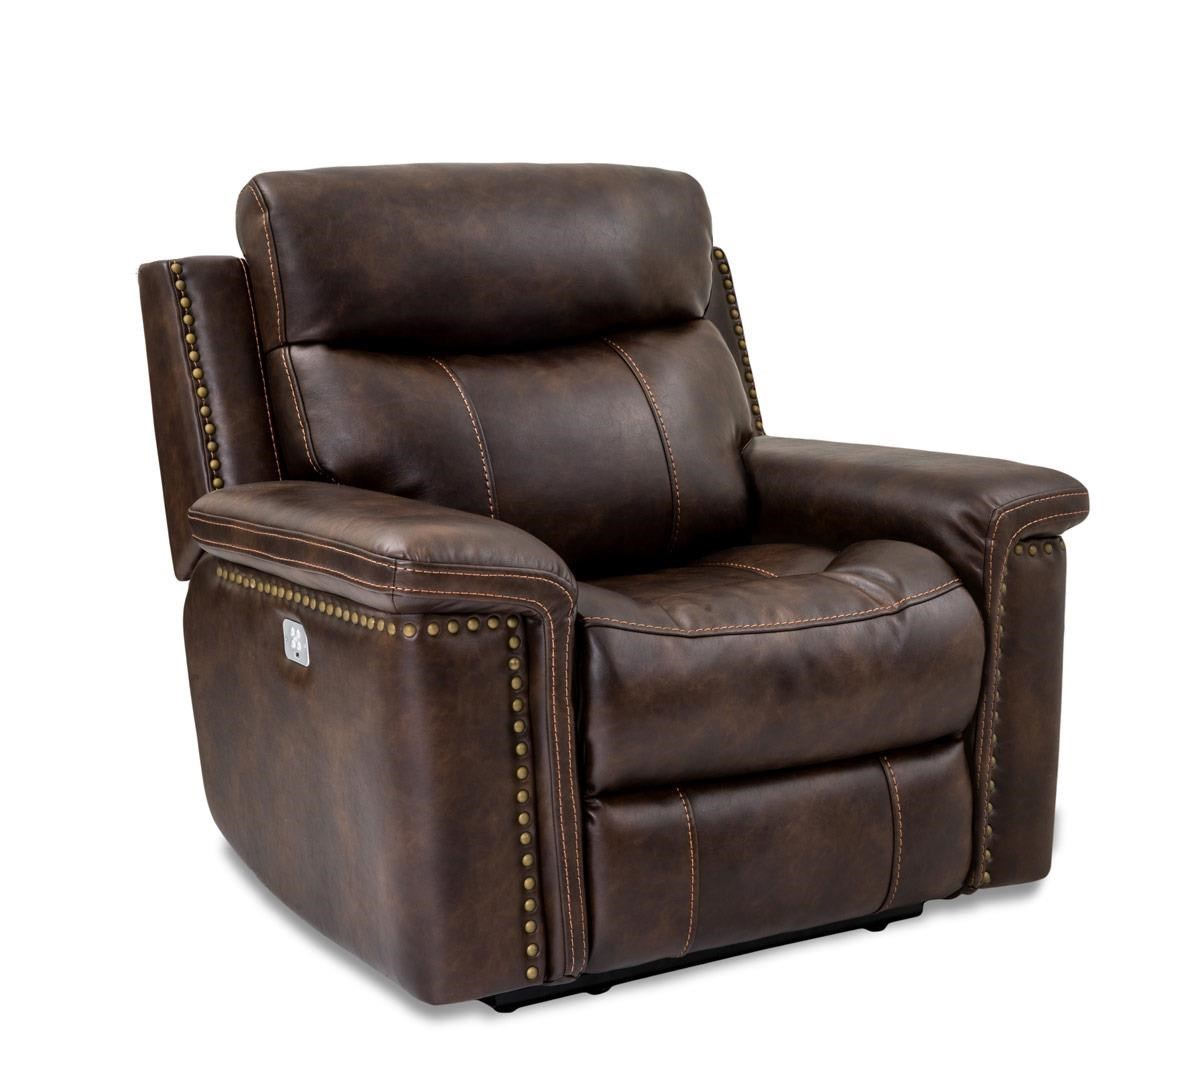 Cheers Sofa Phoenix Leather Power Recliner with Power Head u0026 Footrests - Great American Home Store - Three Way Recliners  sc 1 st  Great American Home Store & Cheers Sofa Phoenix Leather Power Recliner with Power Head ... islam-shia.org